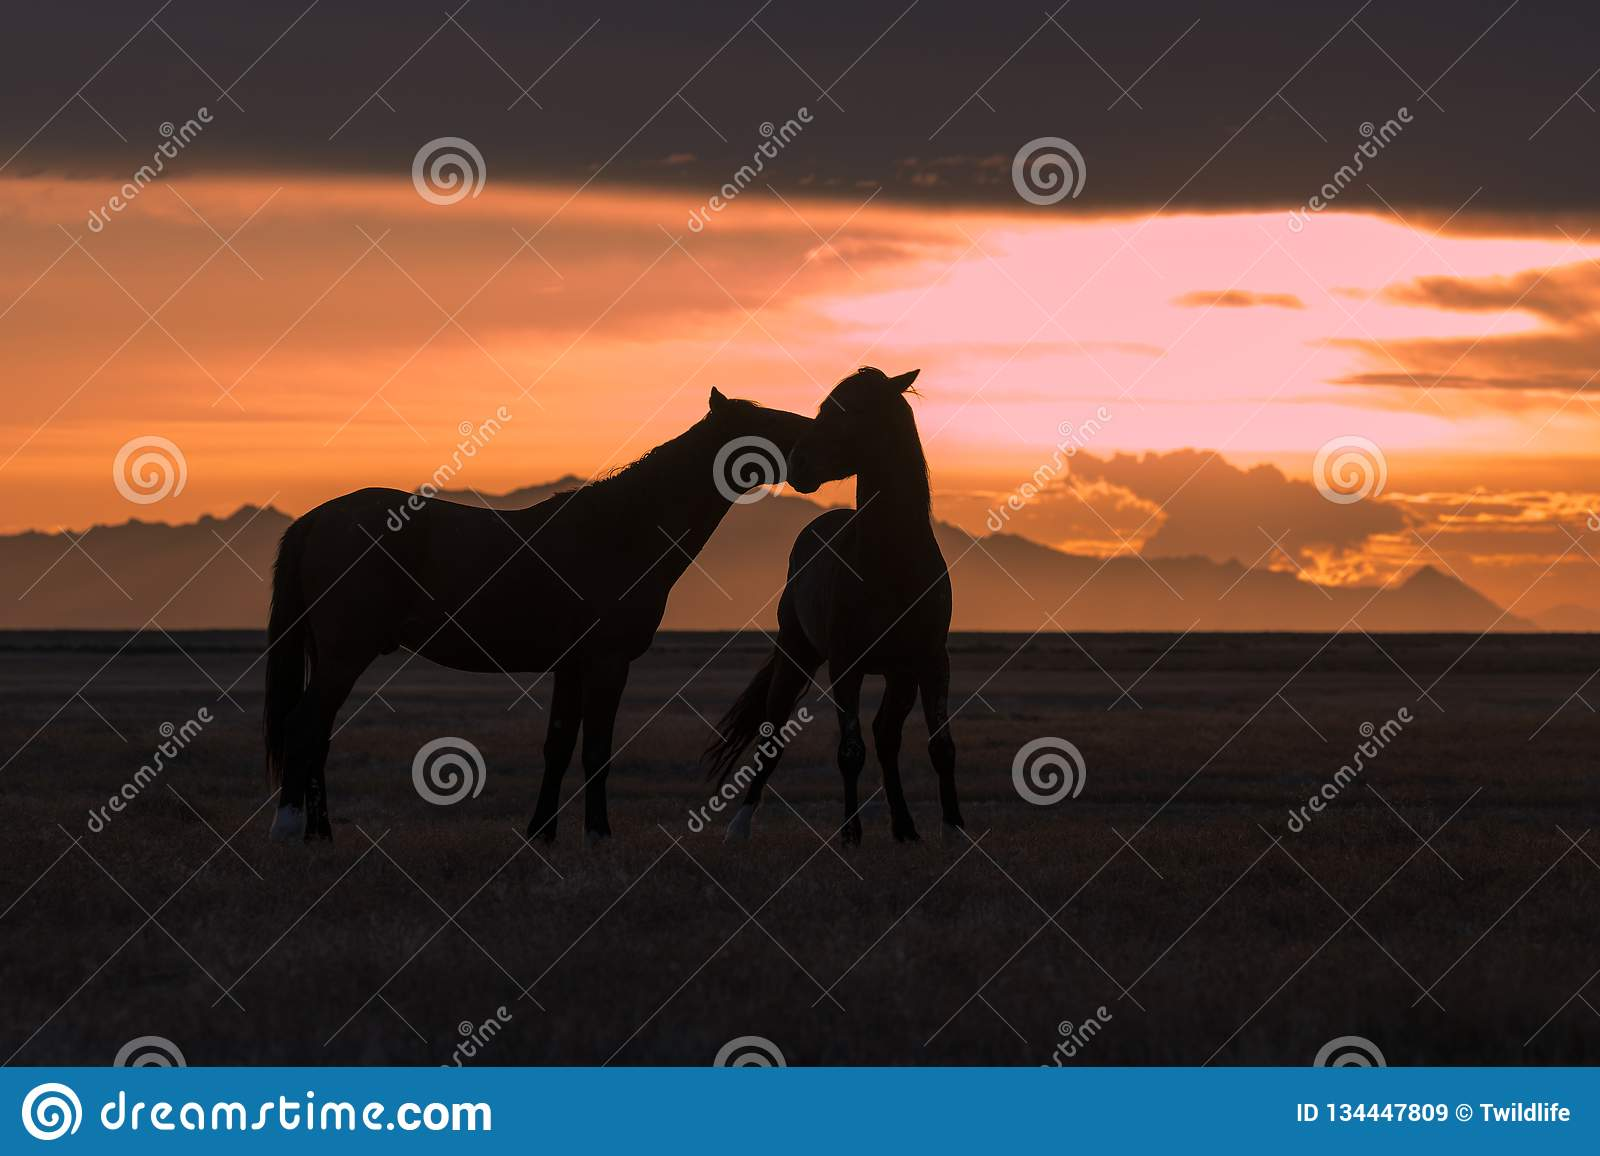 Wild Horses Silhouetted at Sunset in the Desert